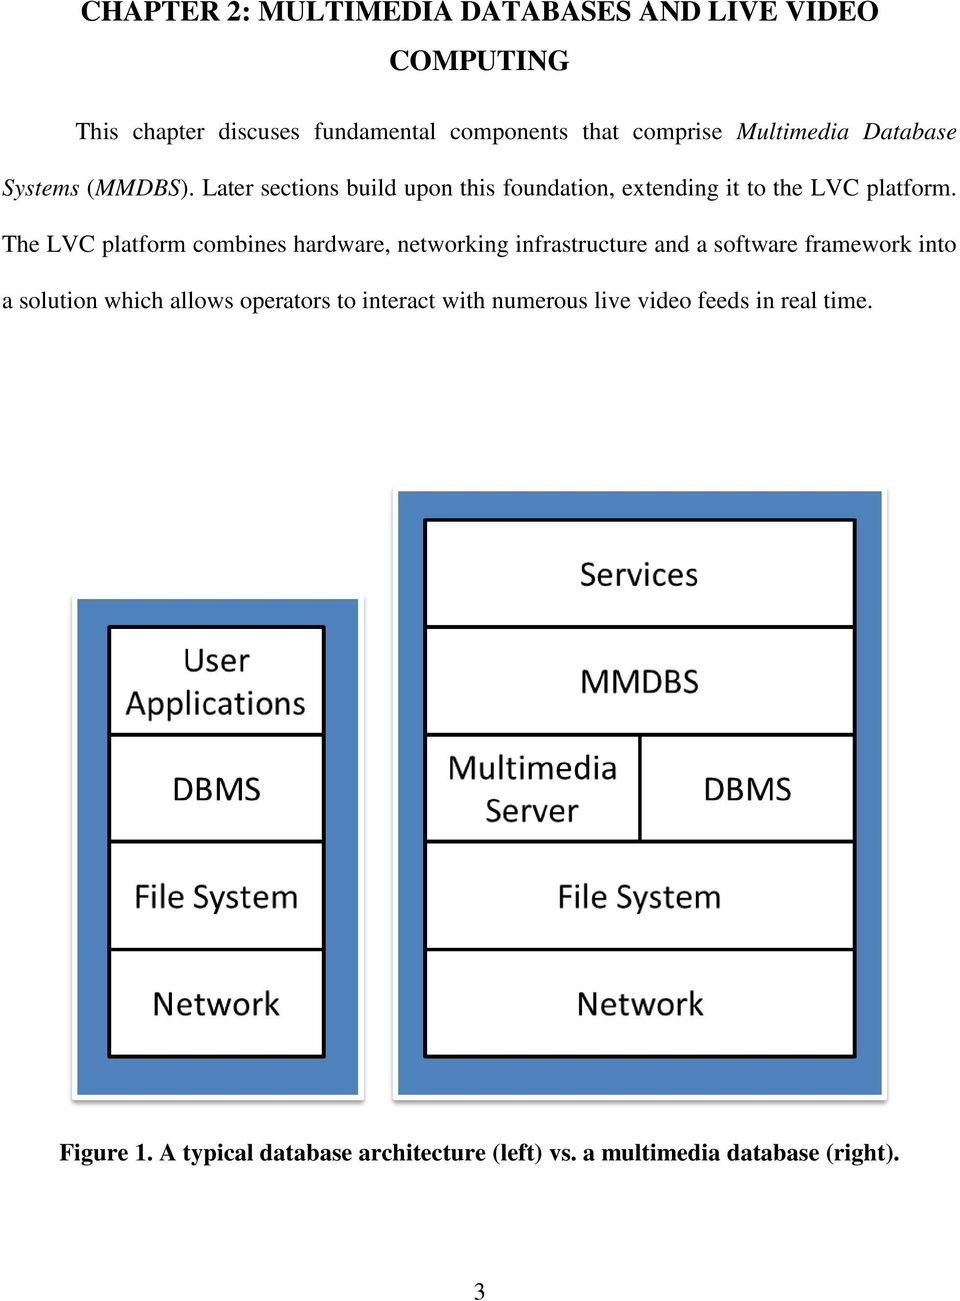 The LVC platform combines hardware, networking infrastructure and a software framework into a solution which allows